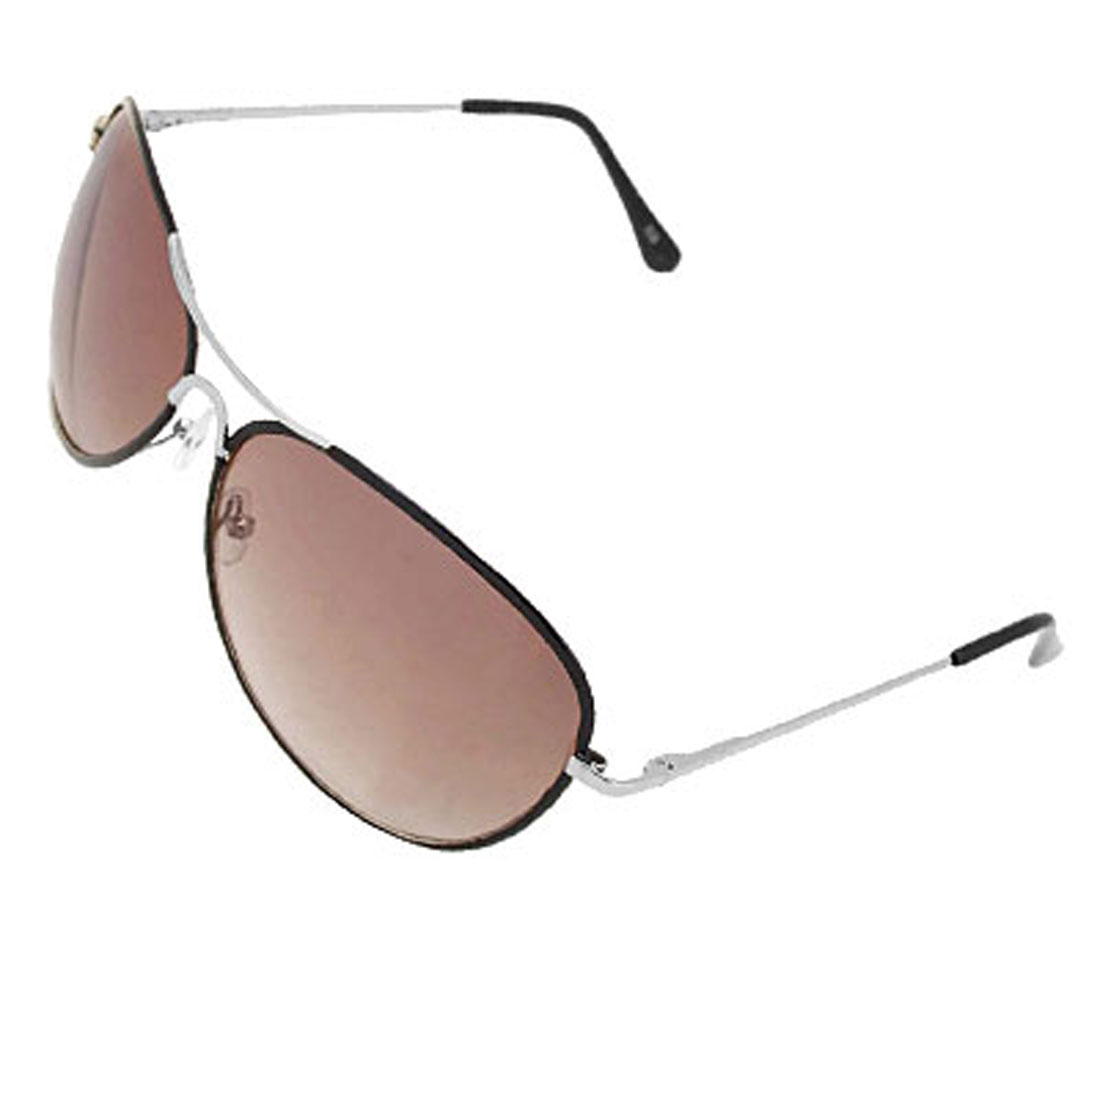 Aviator Sunglasses Black Metal Frame Brown Lens